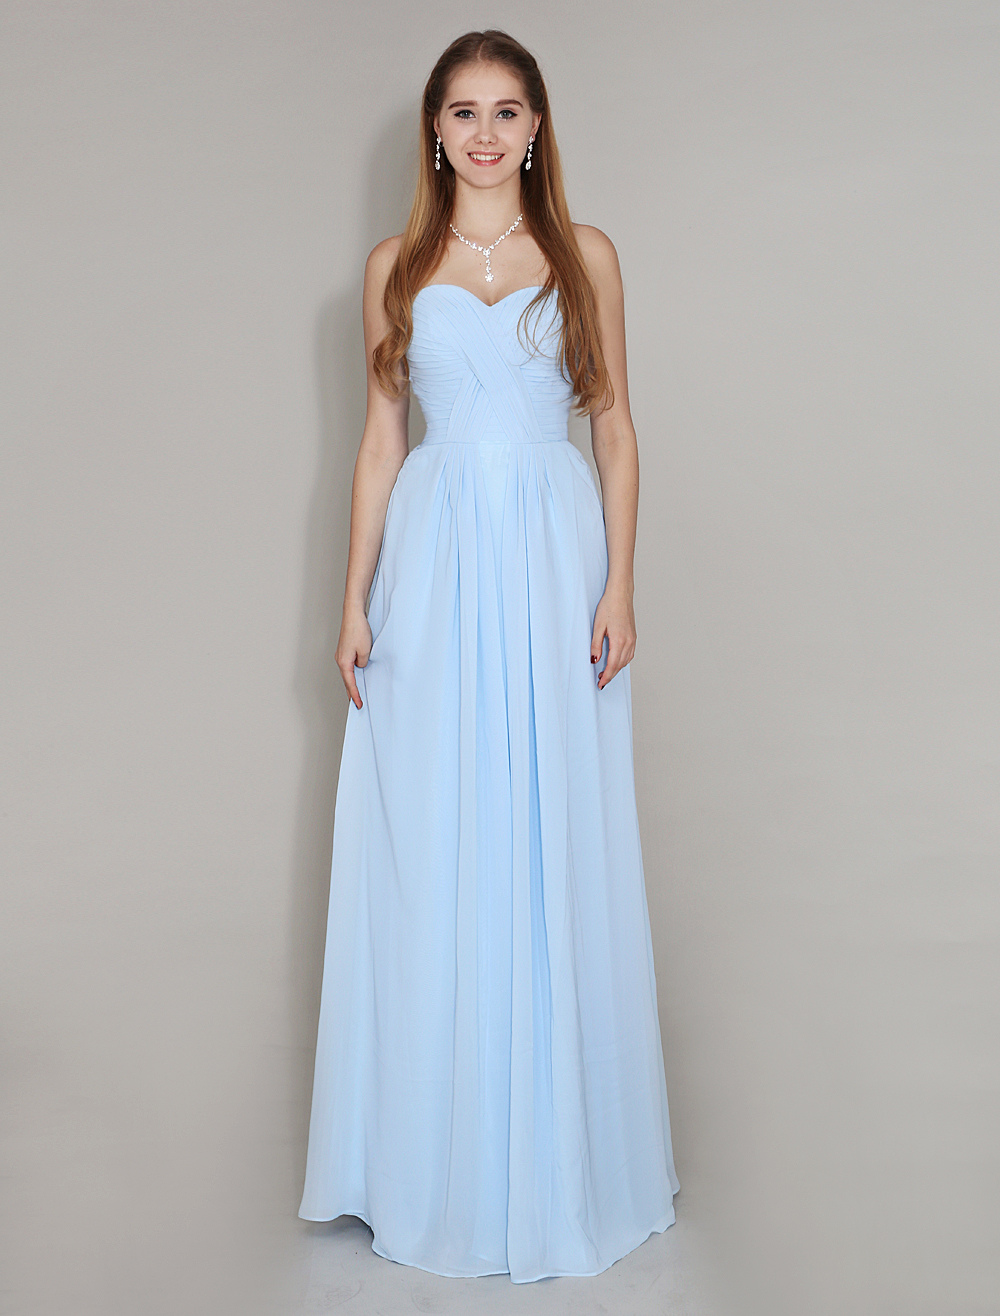 Pastel Blue Bridesmaid Dress Sweetheart Neck Floor Length Chiffon Ruched Wedding Party Dress